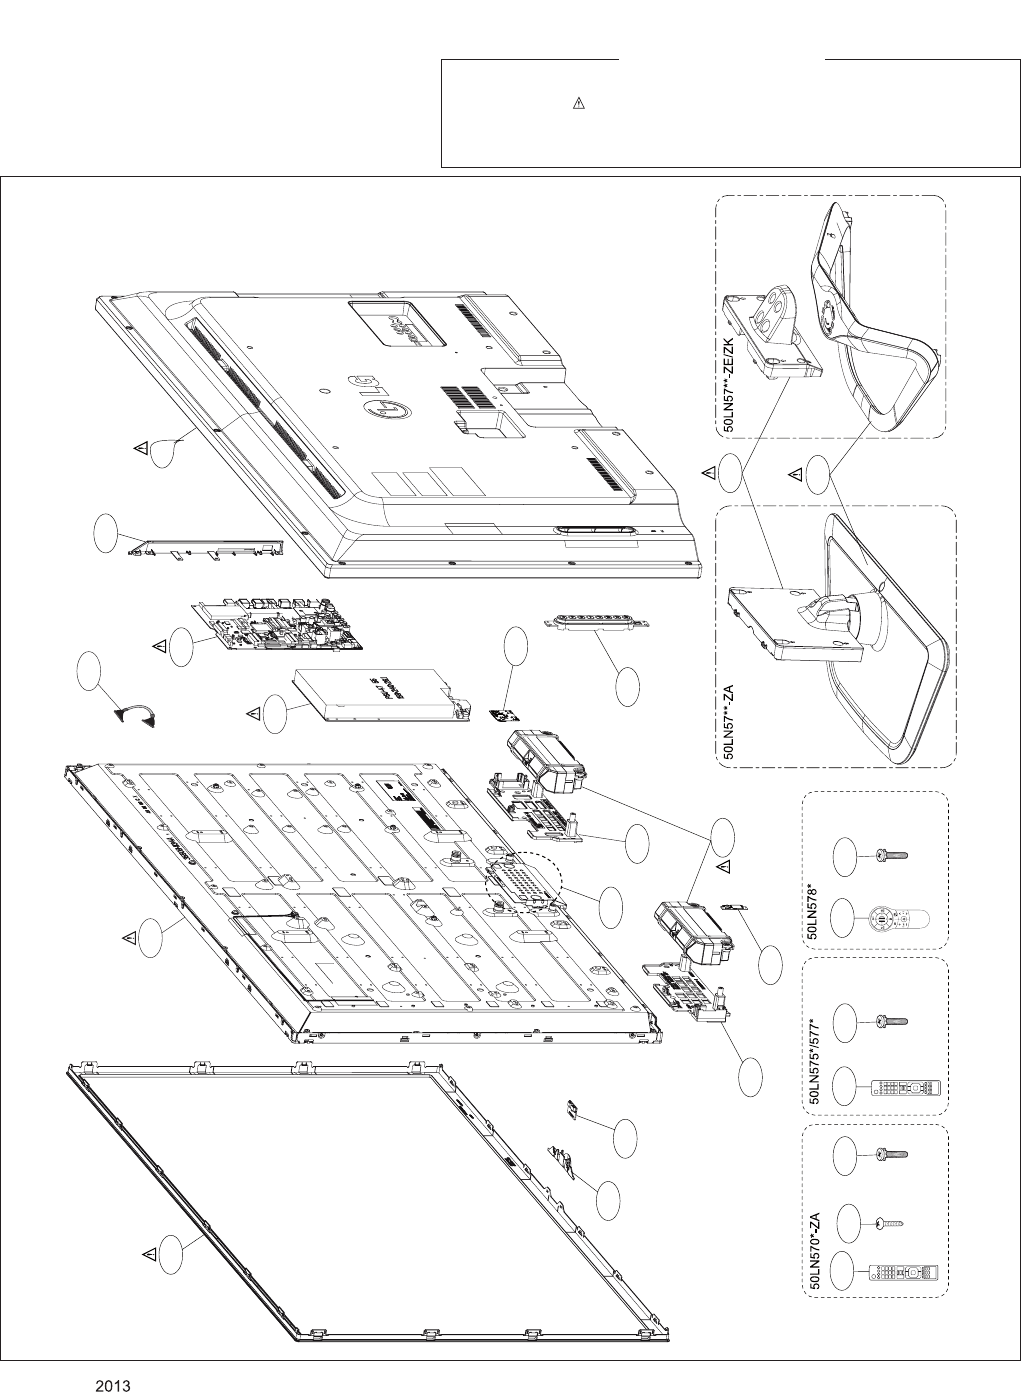 LG Electronics 50LN57**-Z* EXPLODED VIEW